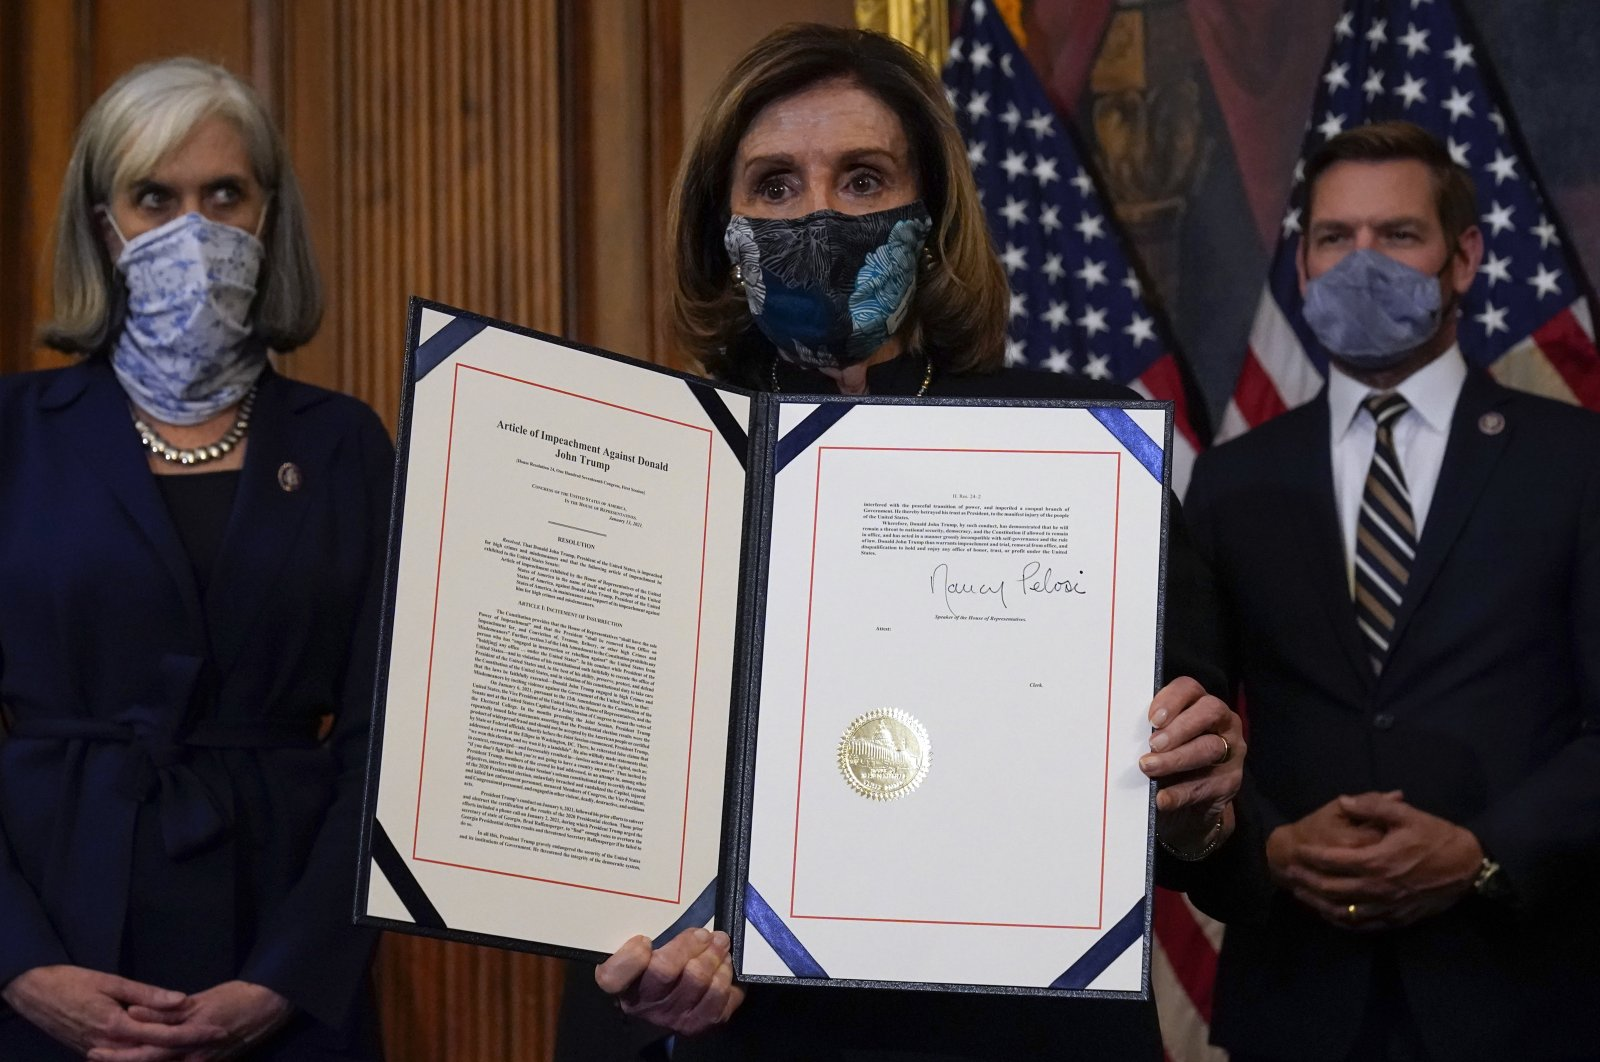 House Speaker Nancy Pelosi displays the signed article of impeachment against President Donald Trump during an engrossment ceremony before transmission to the Senate for a trial on Capitol Hill, in Washington, D.C., U.S., Jan. 13, 2021. (AP Photo/Alex Brandon)